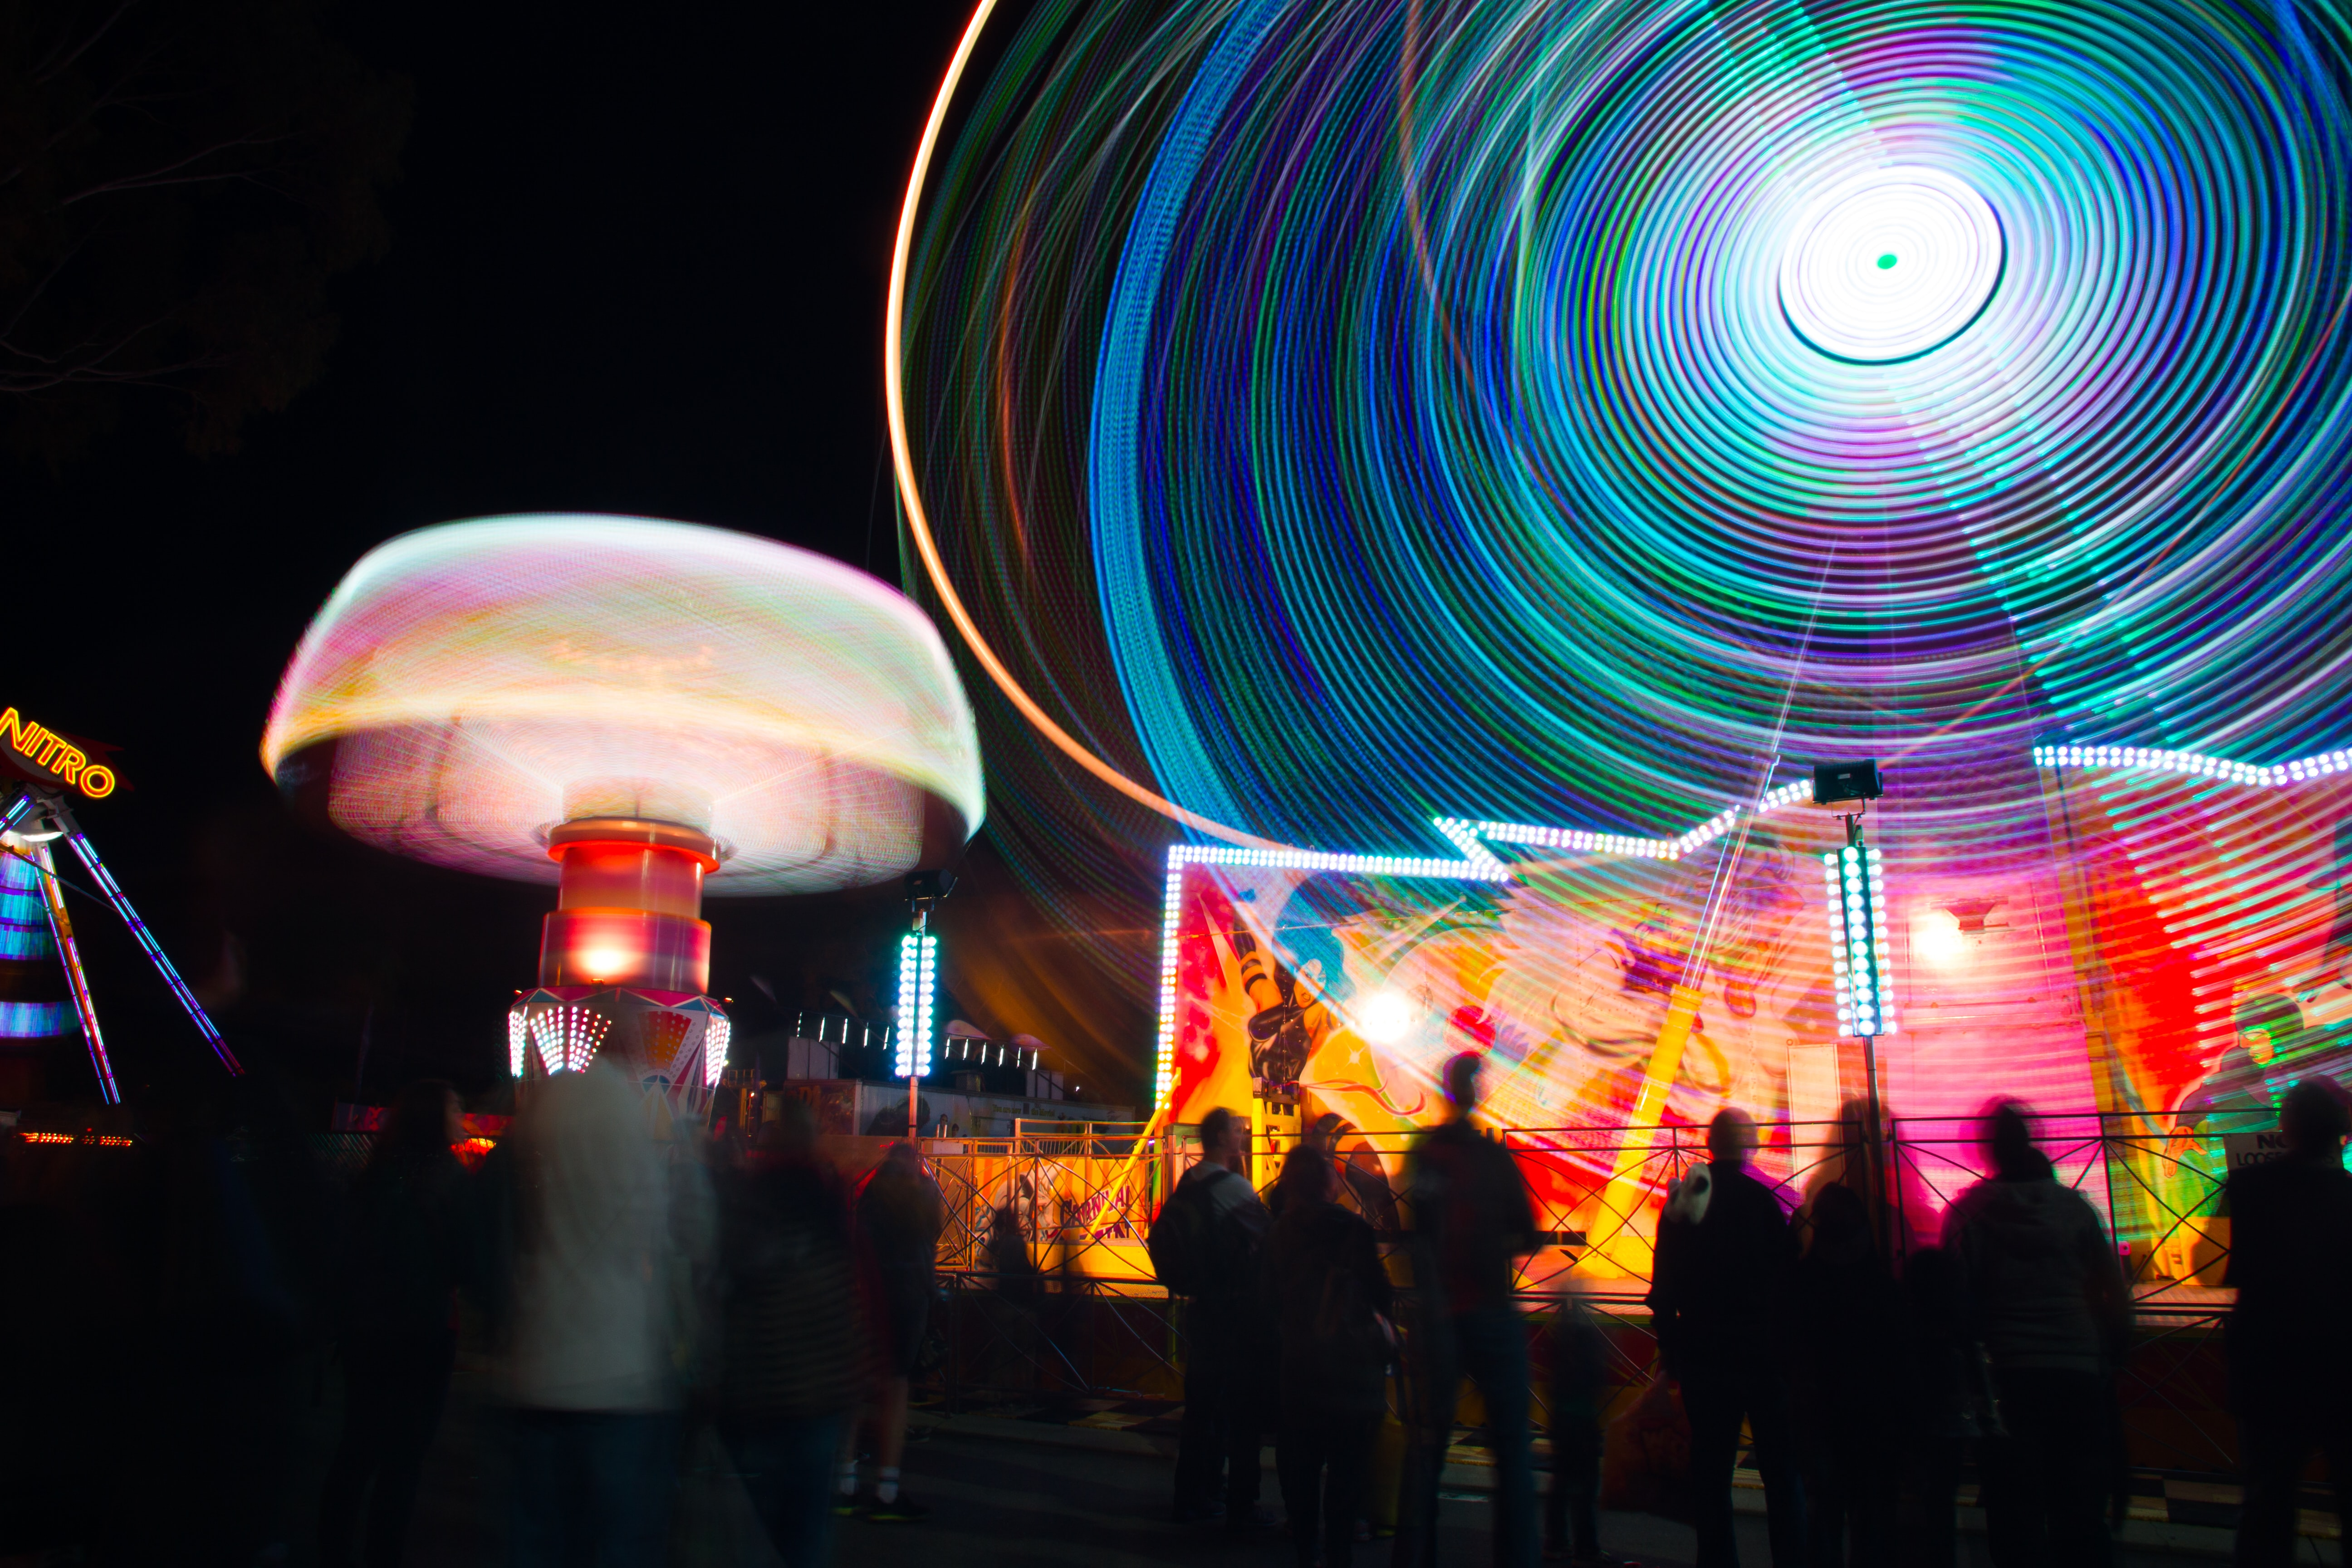 time-lapse photography of ferris wheel during night time